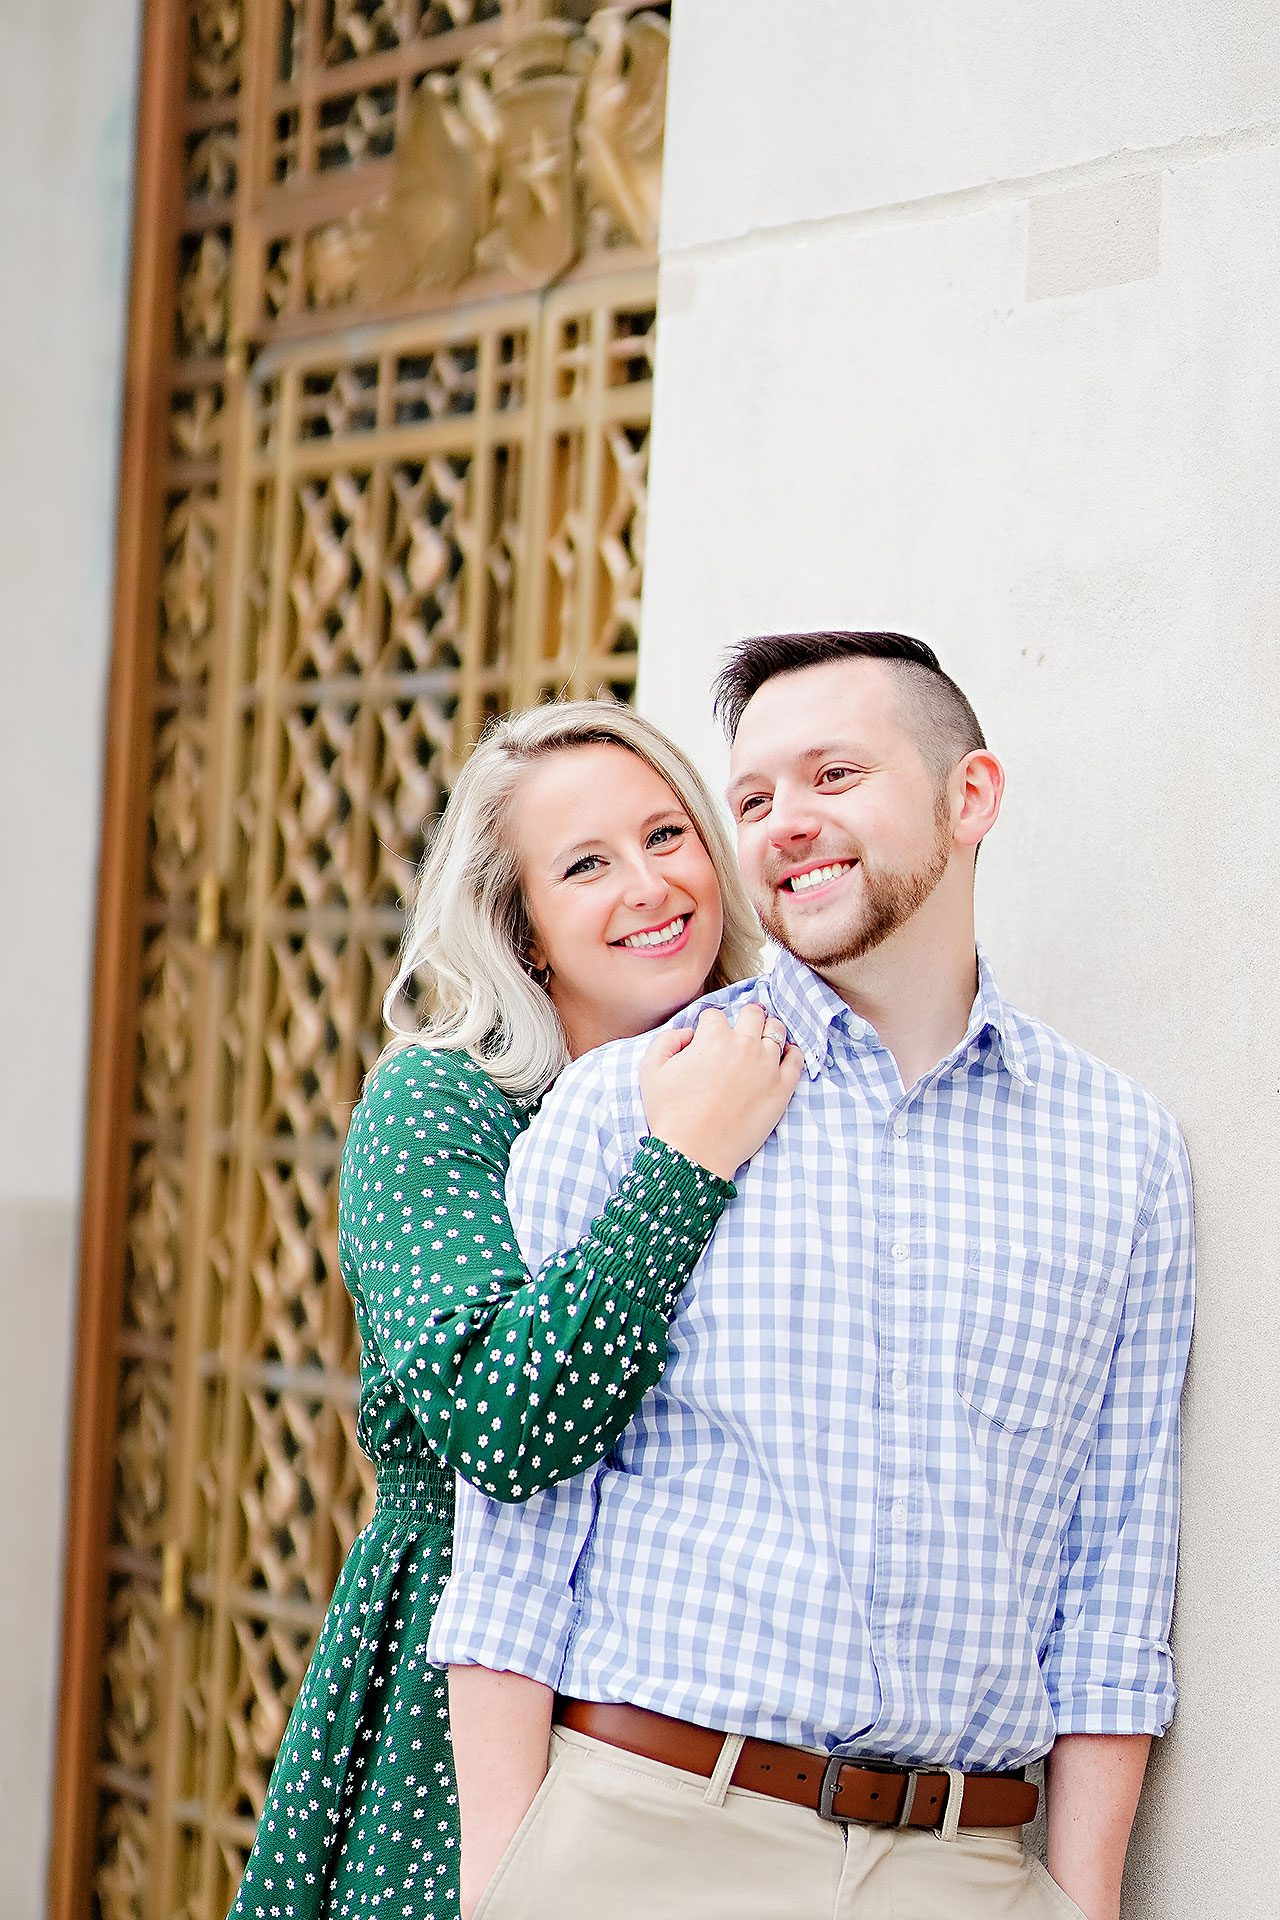 Kristen Jonny Indianapolis Downtown Engagement Session 051